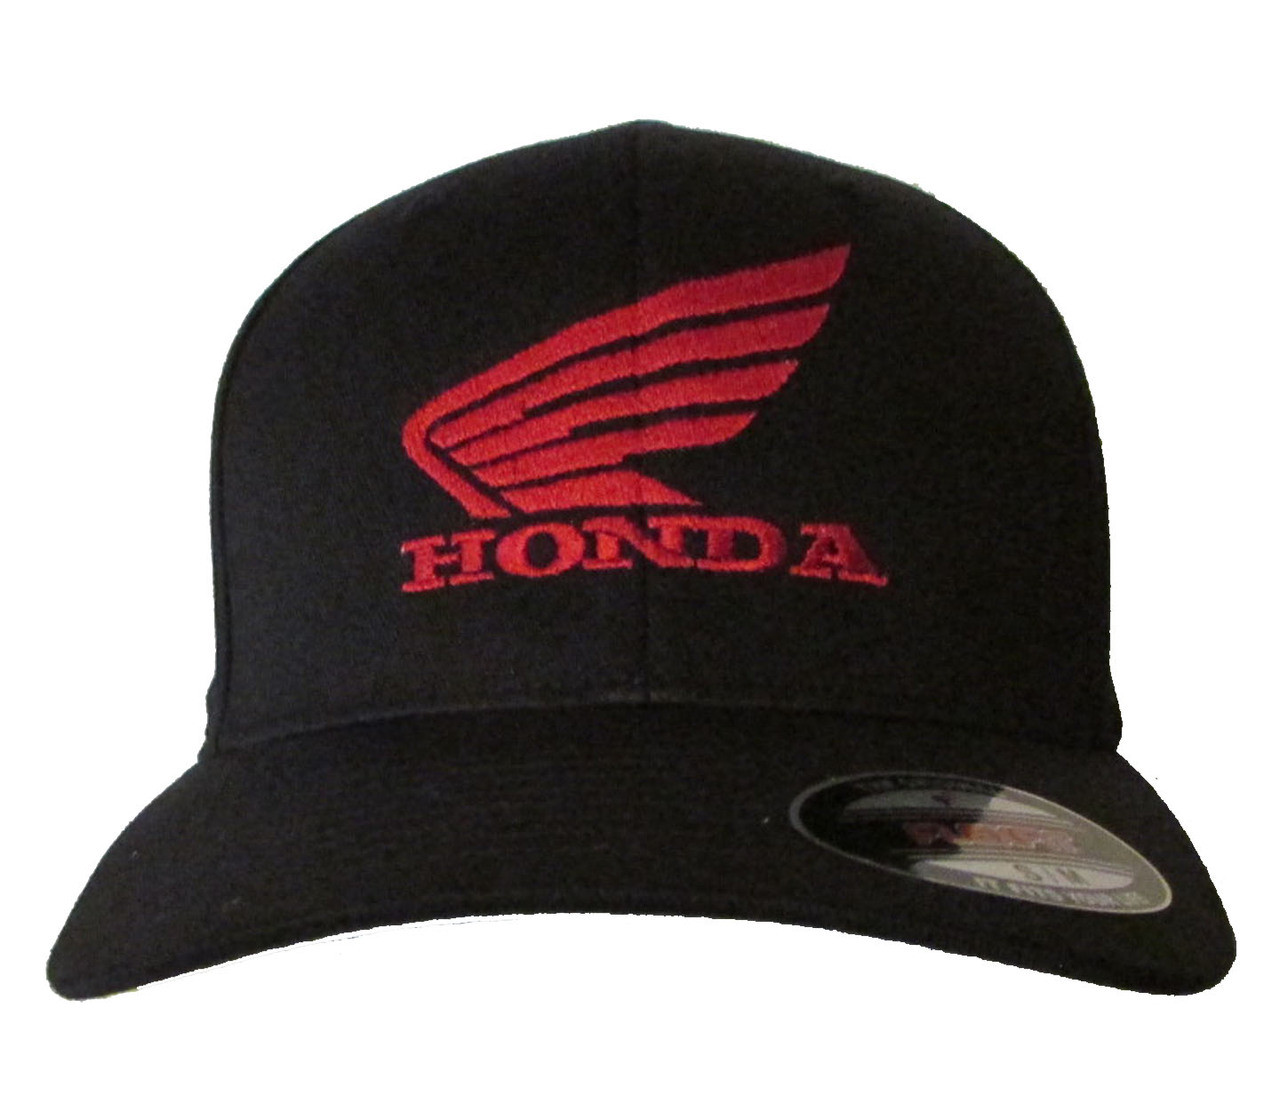 1d92a08caad Honda Logo Auto Maker Car SUV Mini Van Embroidered Baseball Hat ...